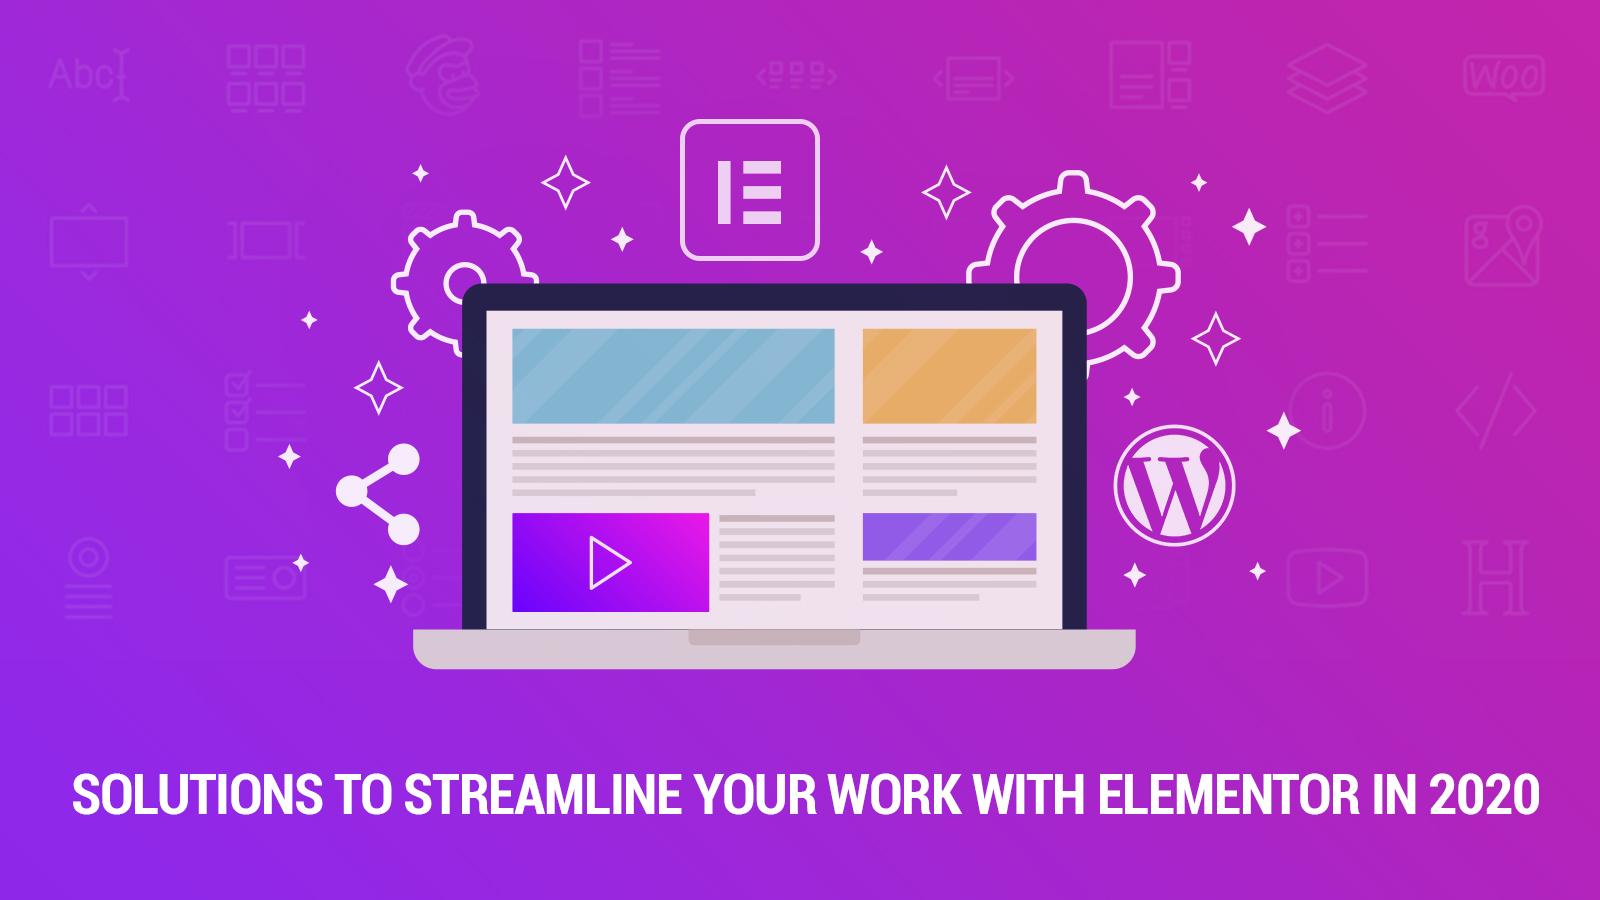 Solutions to Streamline Your Work with Elementor in 2020